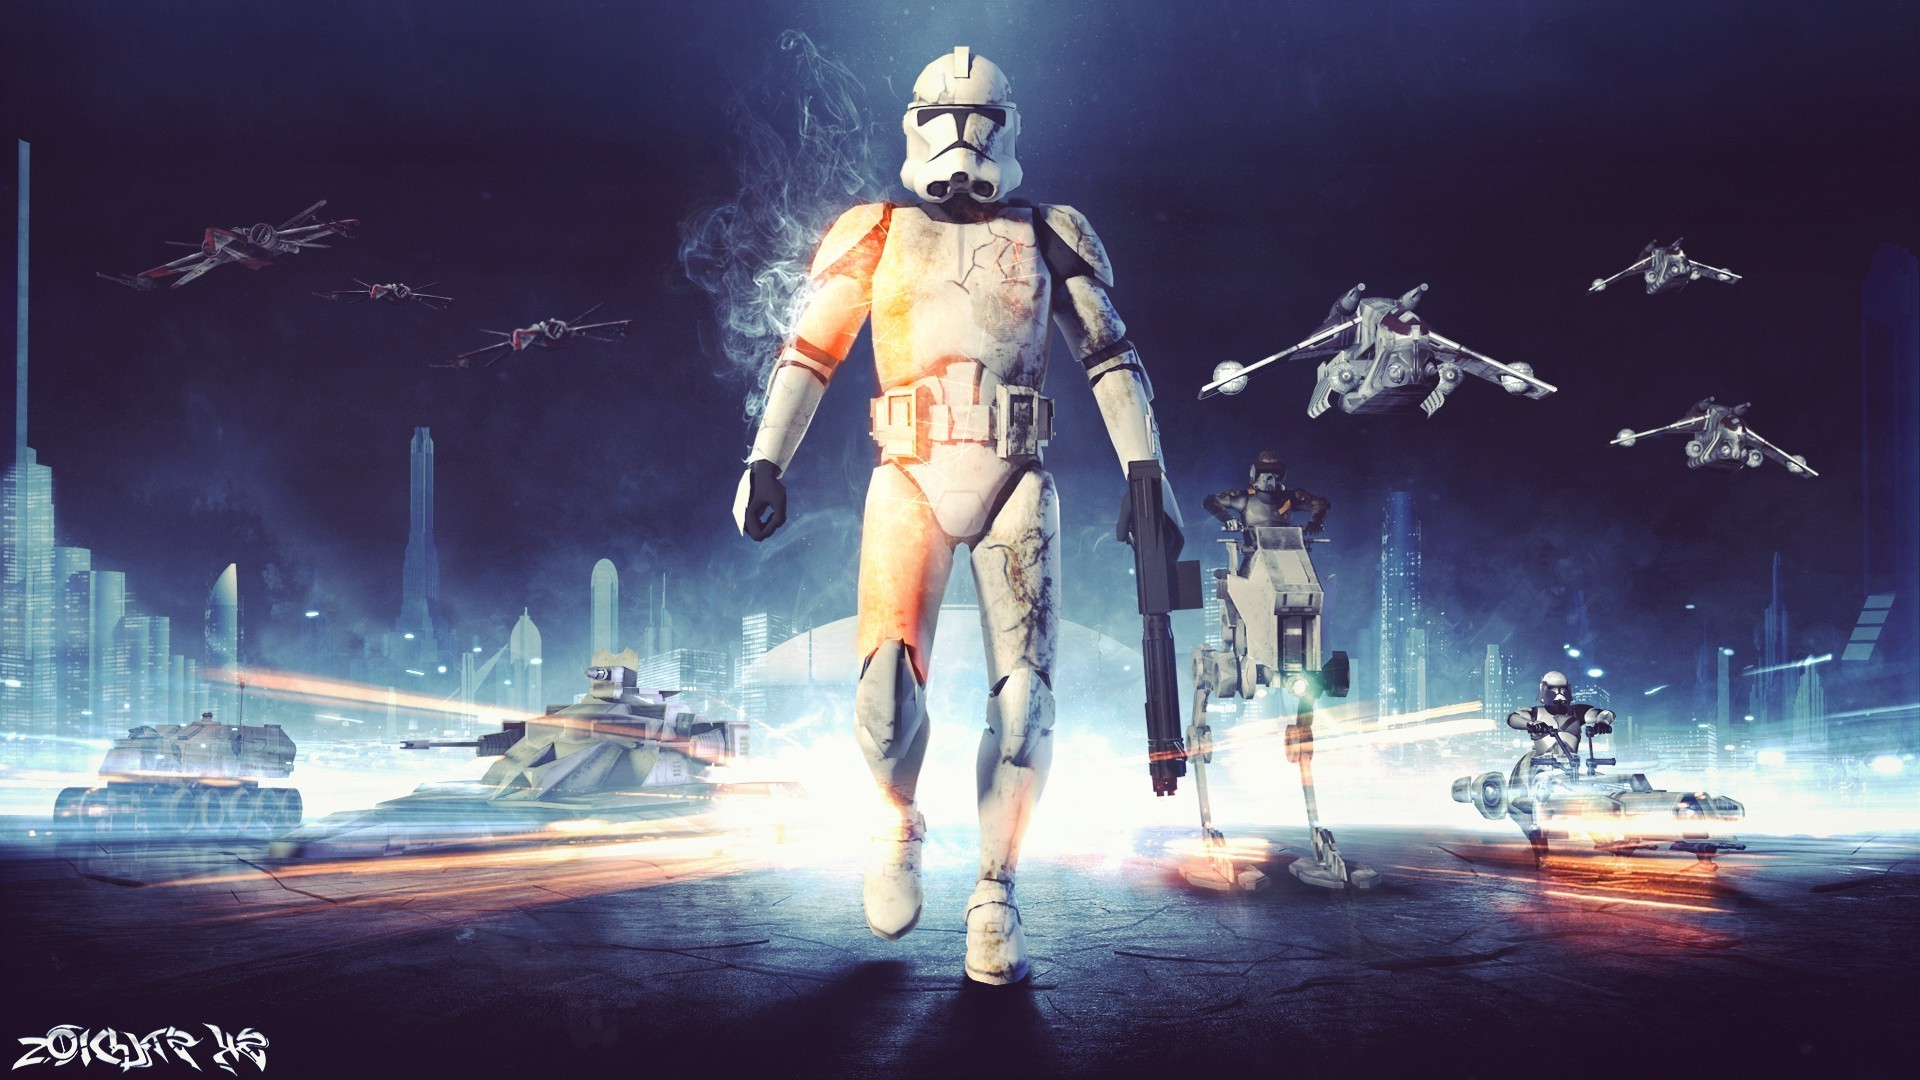 1920x1080 Star Wars, Stormtrooper, Battlefield 3, Video Games Wallpapers HD / Desktop  and Mobile Backgrounds